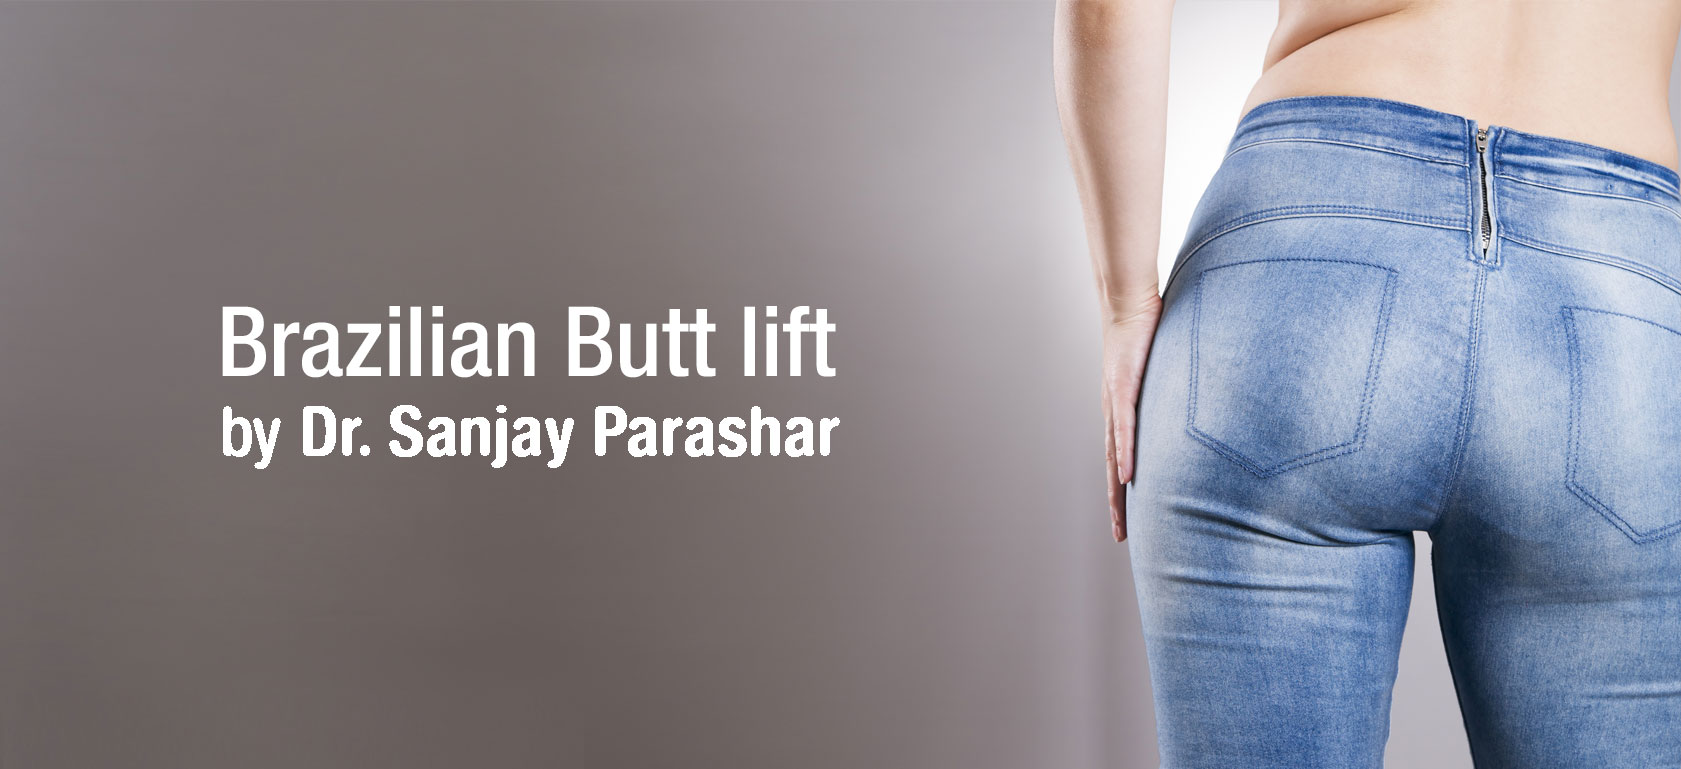 Brazilian Butt Lift Dubai - BBL in Dubai - By Dr Sanjay Parashar